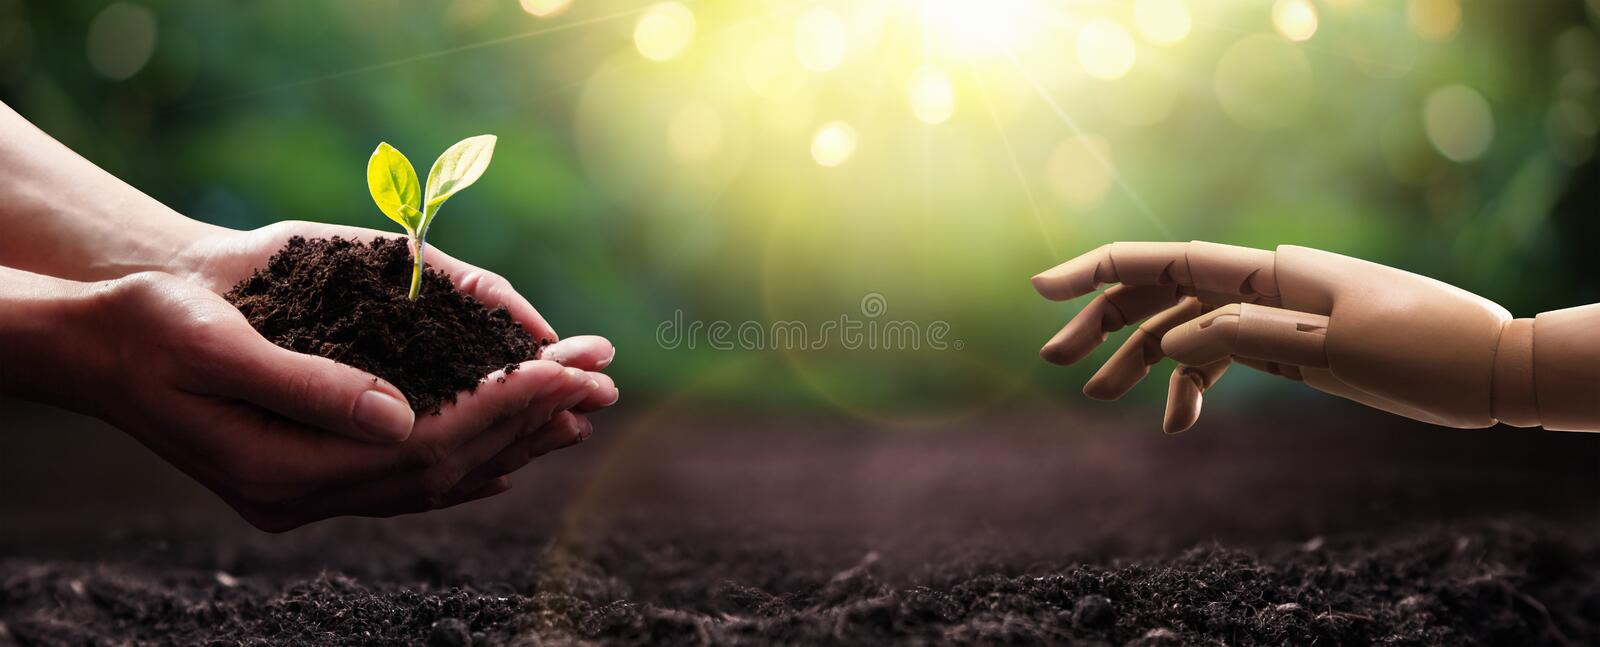 Save Earth. Green Planet in Your Hands. Environment Concept royalty free stock photo